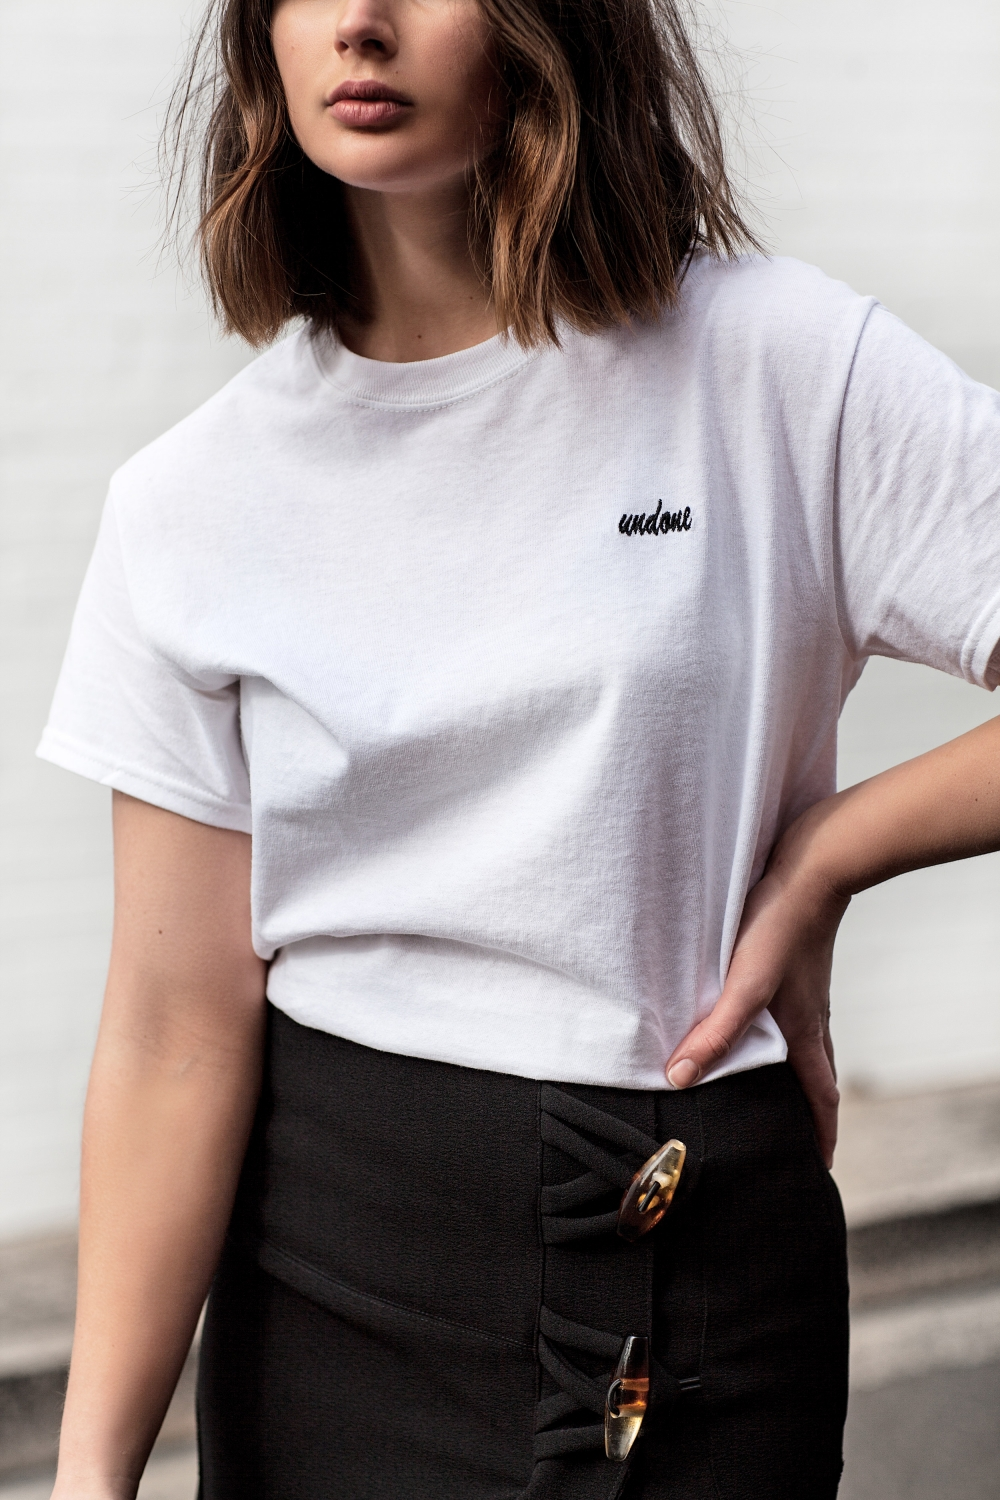 Double Trouble t-shirt and Christopher Esber skirt | The UNDONE online store | Outfit | Style | Streetstyle | HarperandHarley